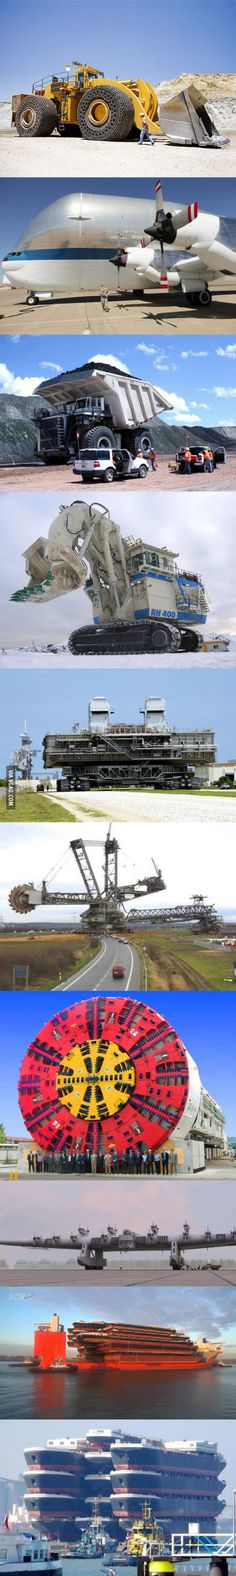 Seriously big machines.